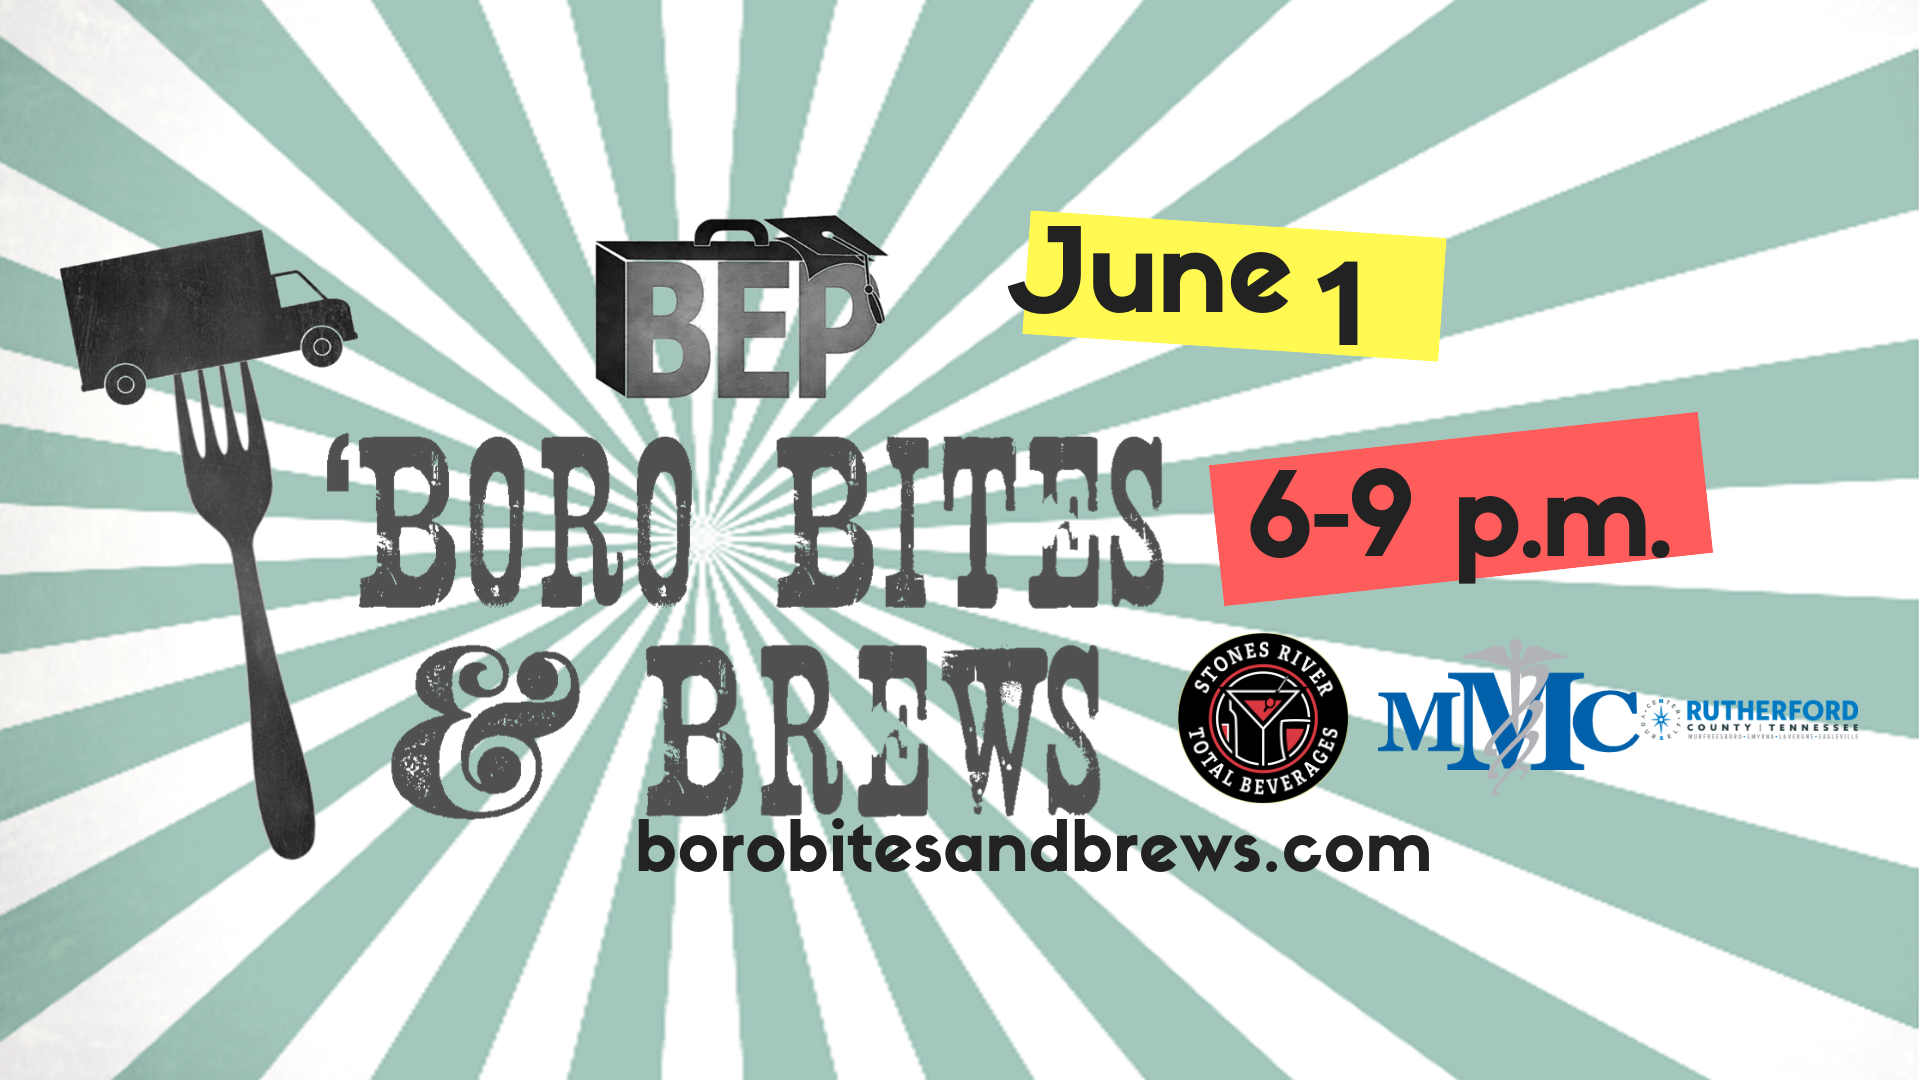 Win Tickets to the Boro Bites & Brews Festival!